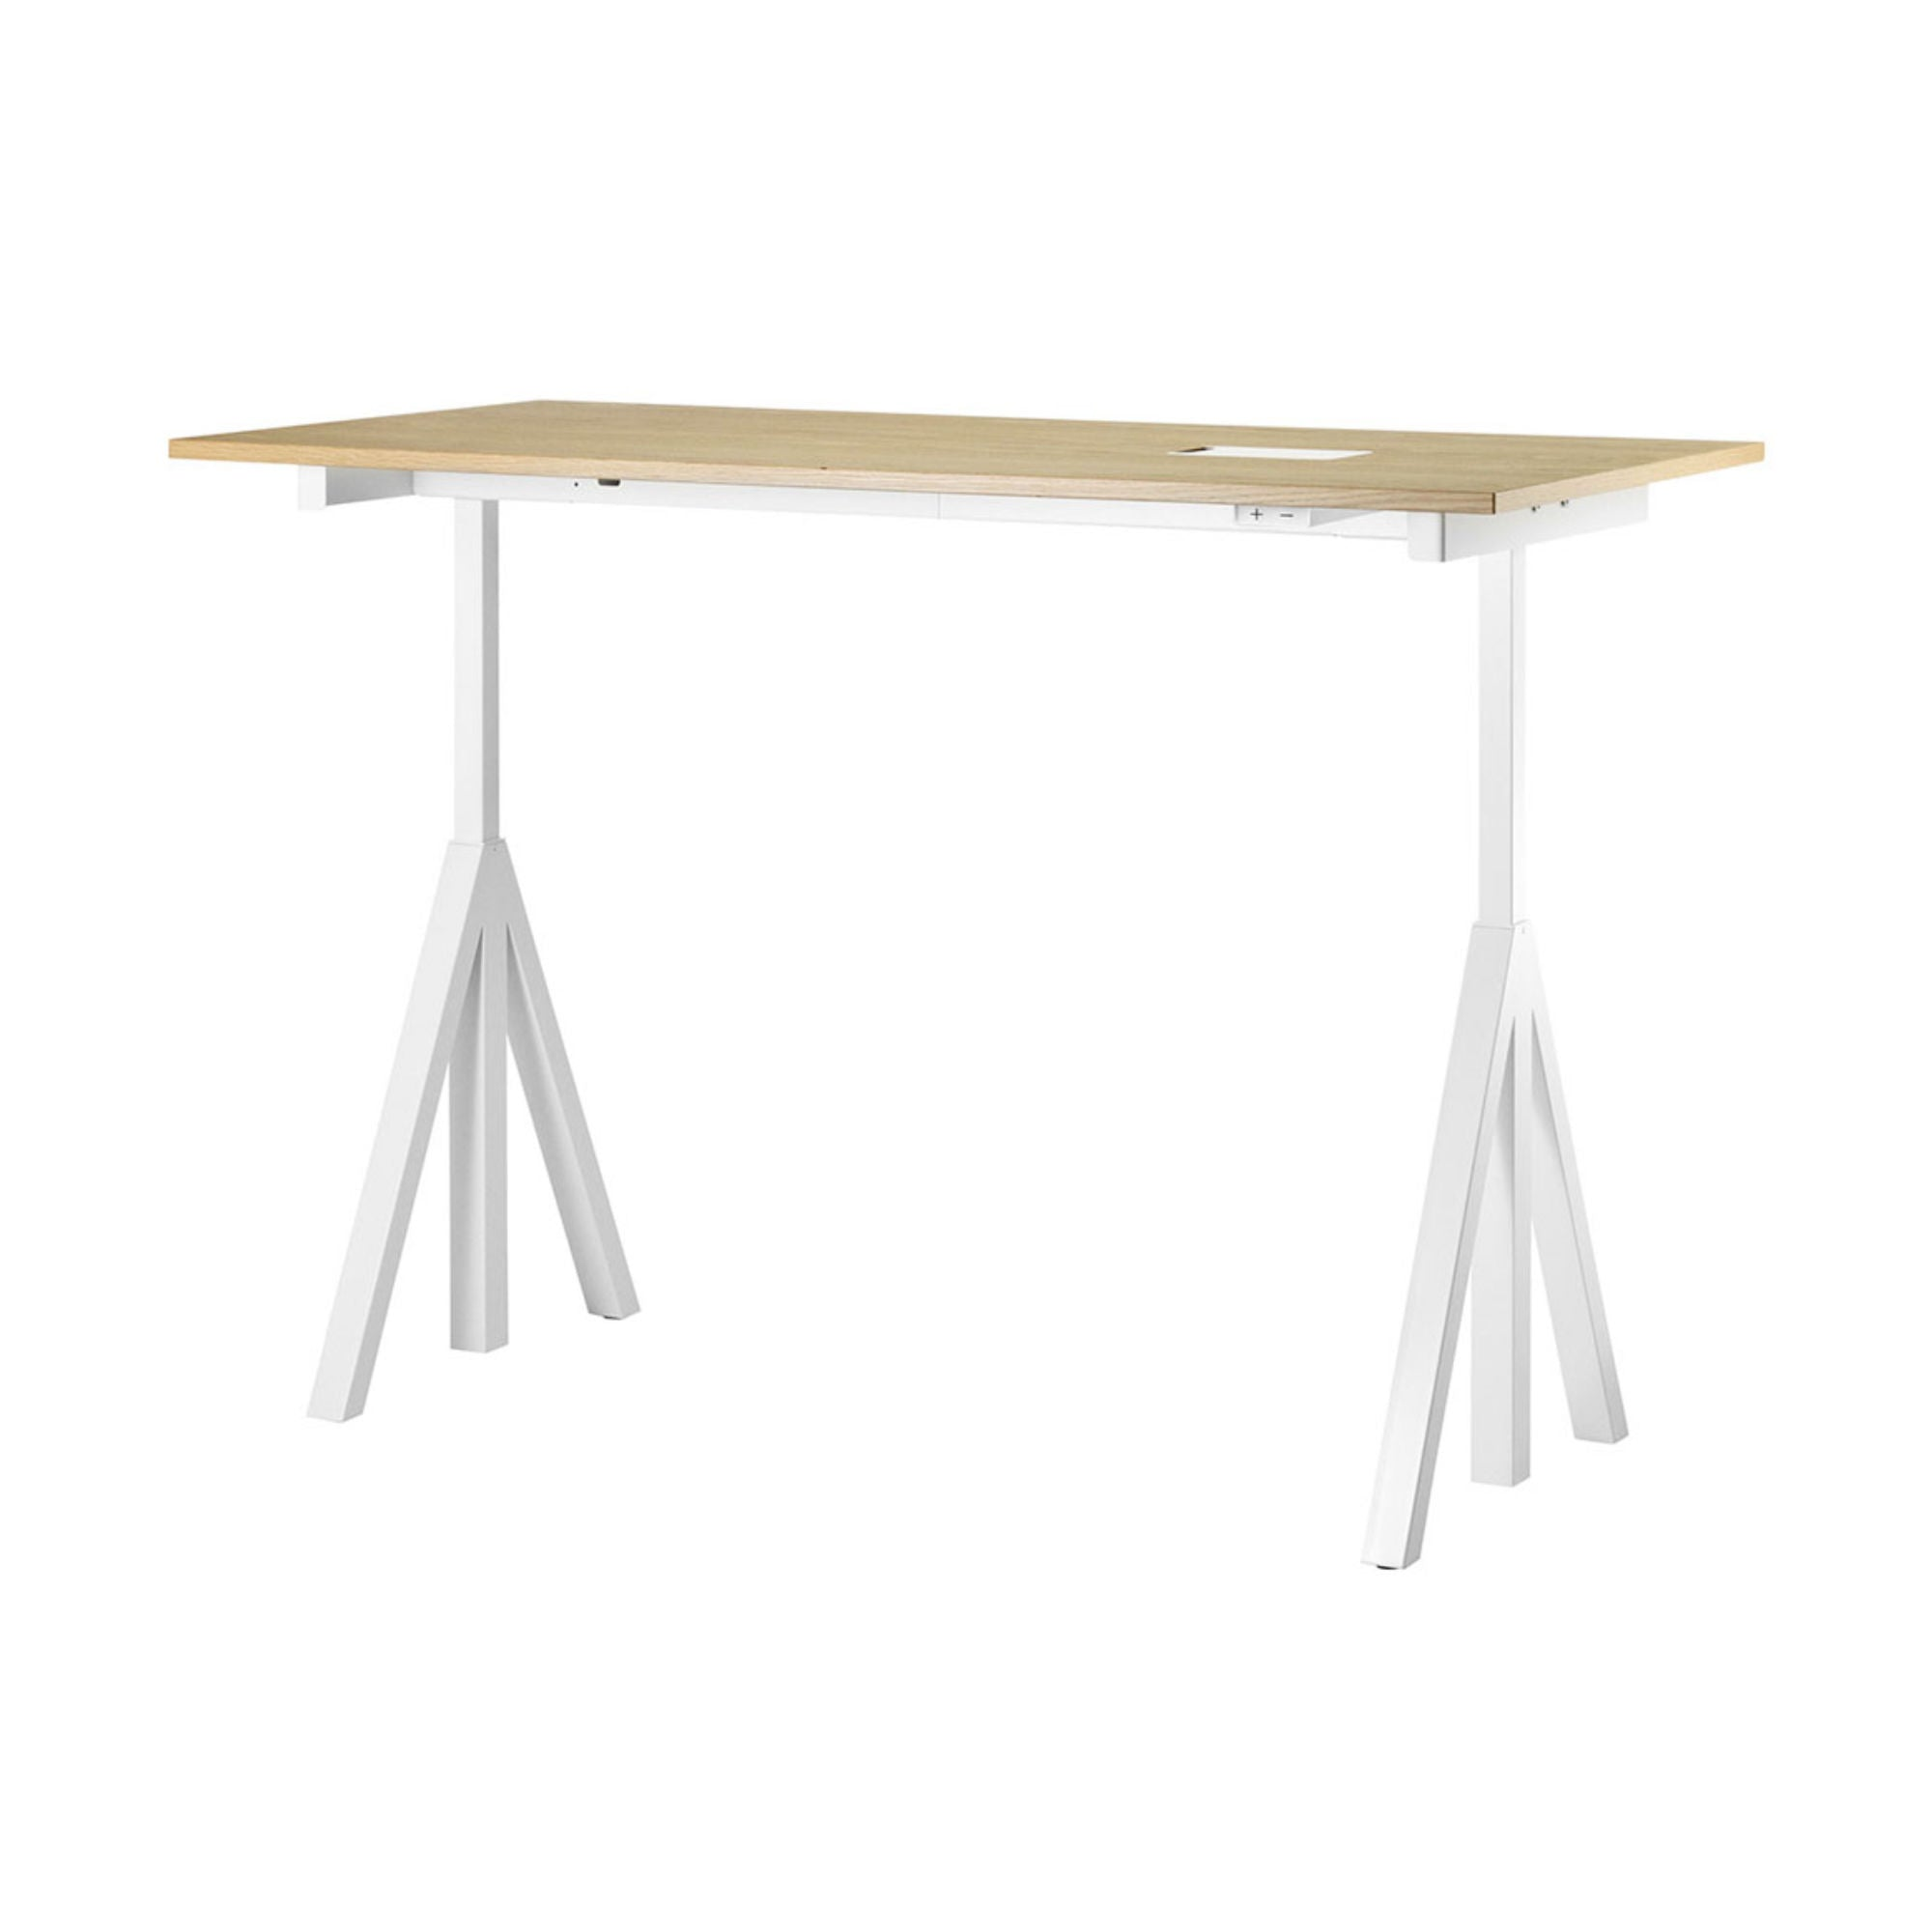 String Works™ Heigh-Adjustable Desk, Oak (120x78 cm)